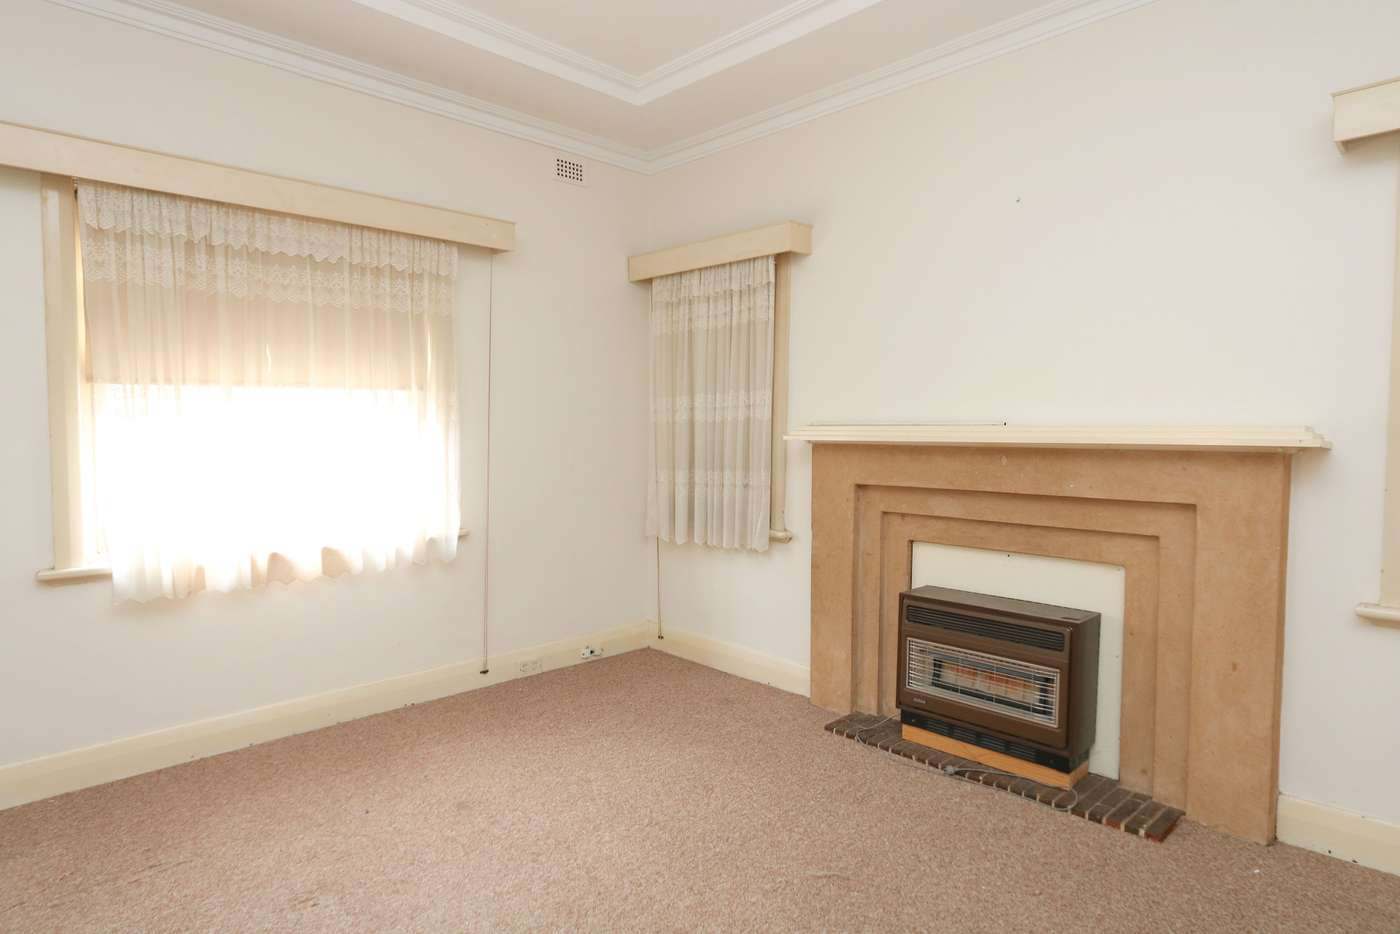 Sixth view of Homely house listing, 24 Glengarry Street, Woodville South SA 5011